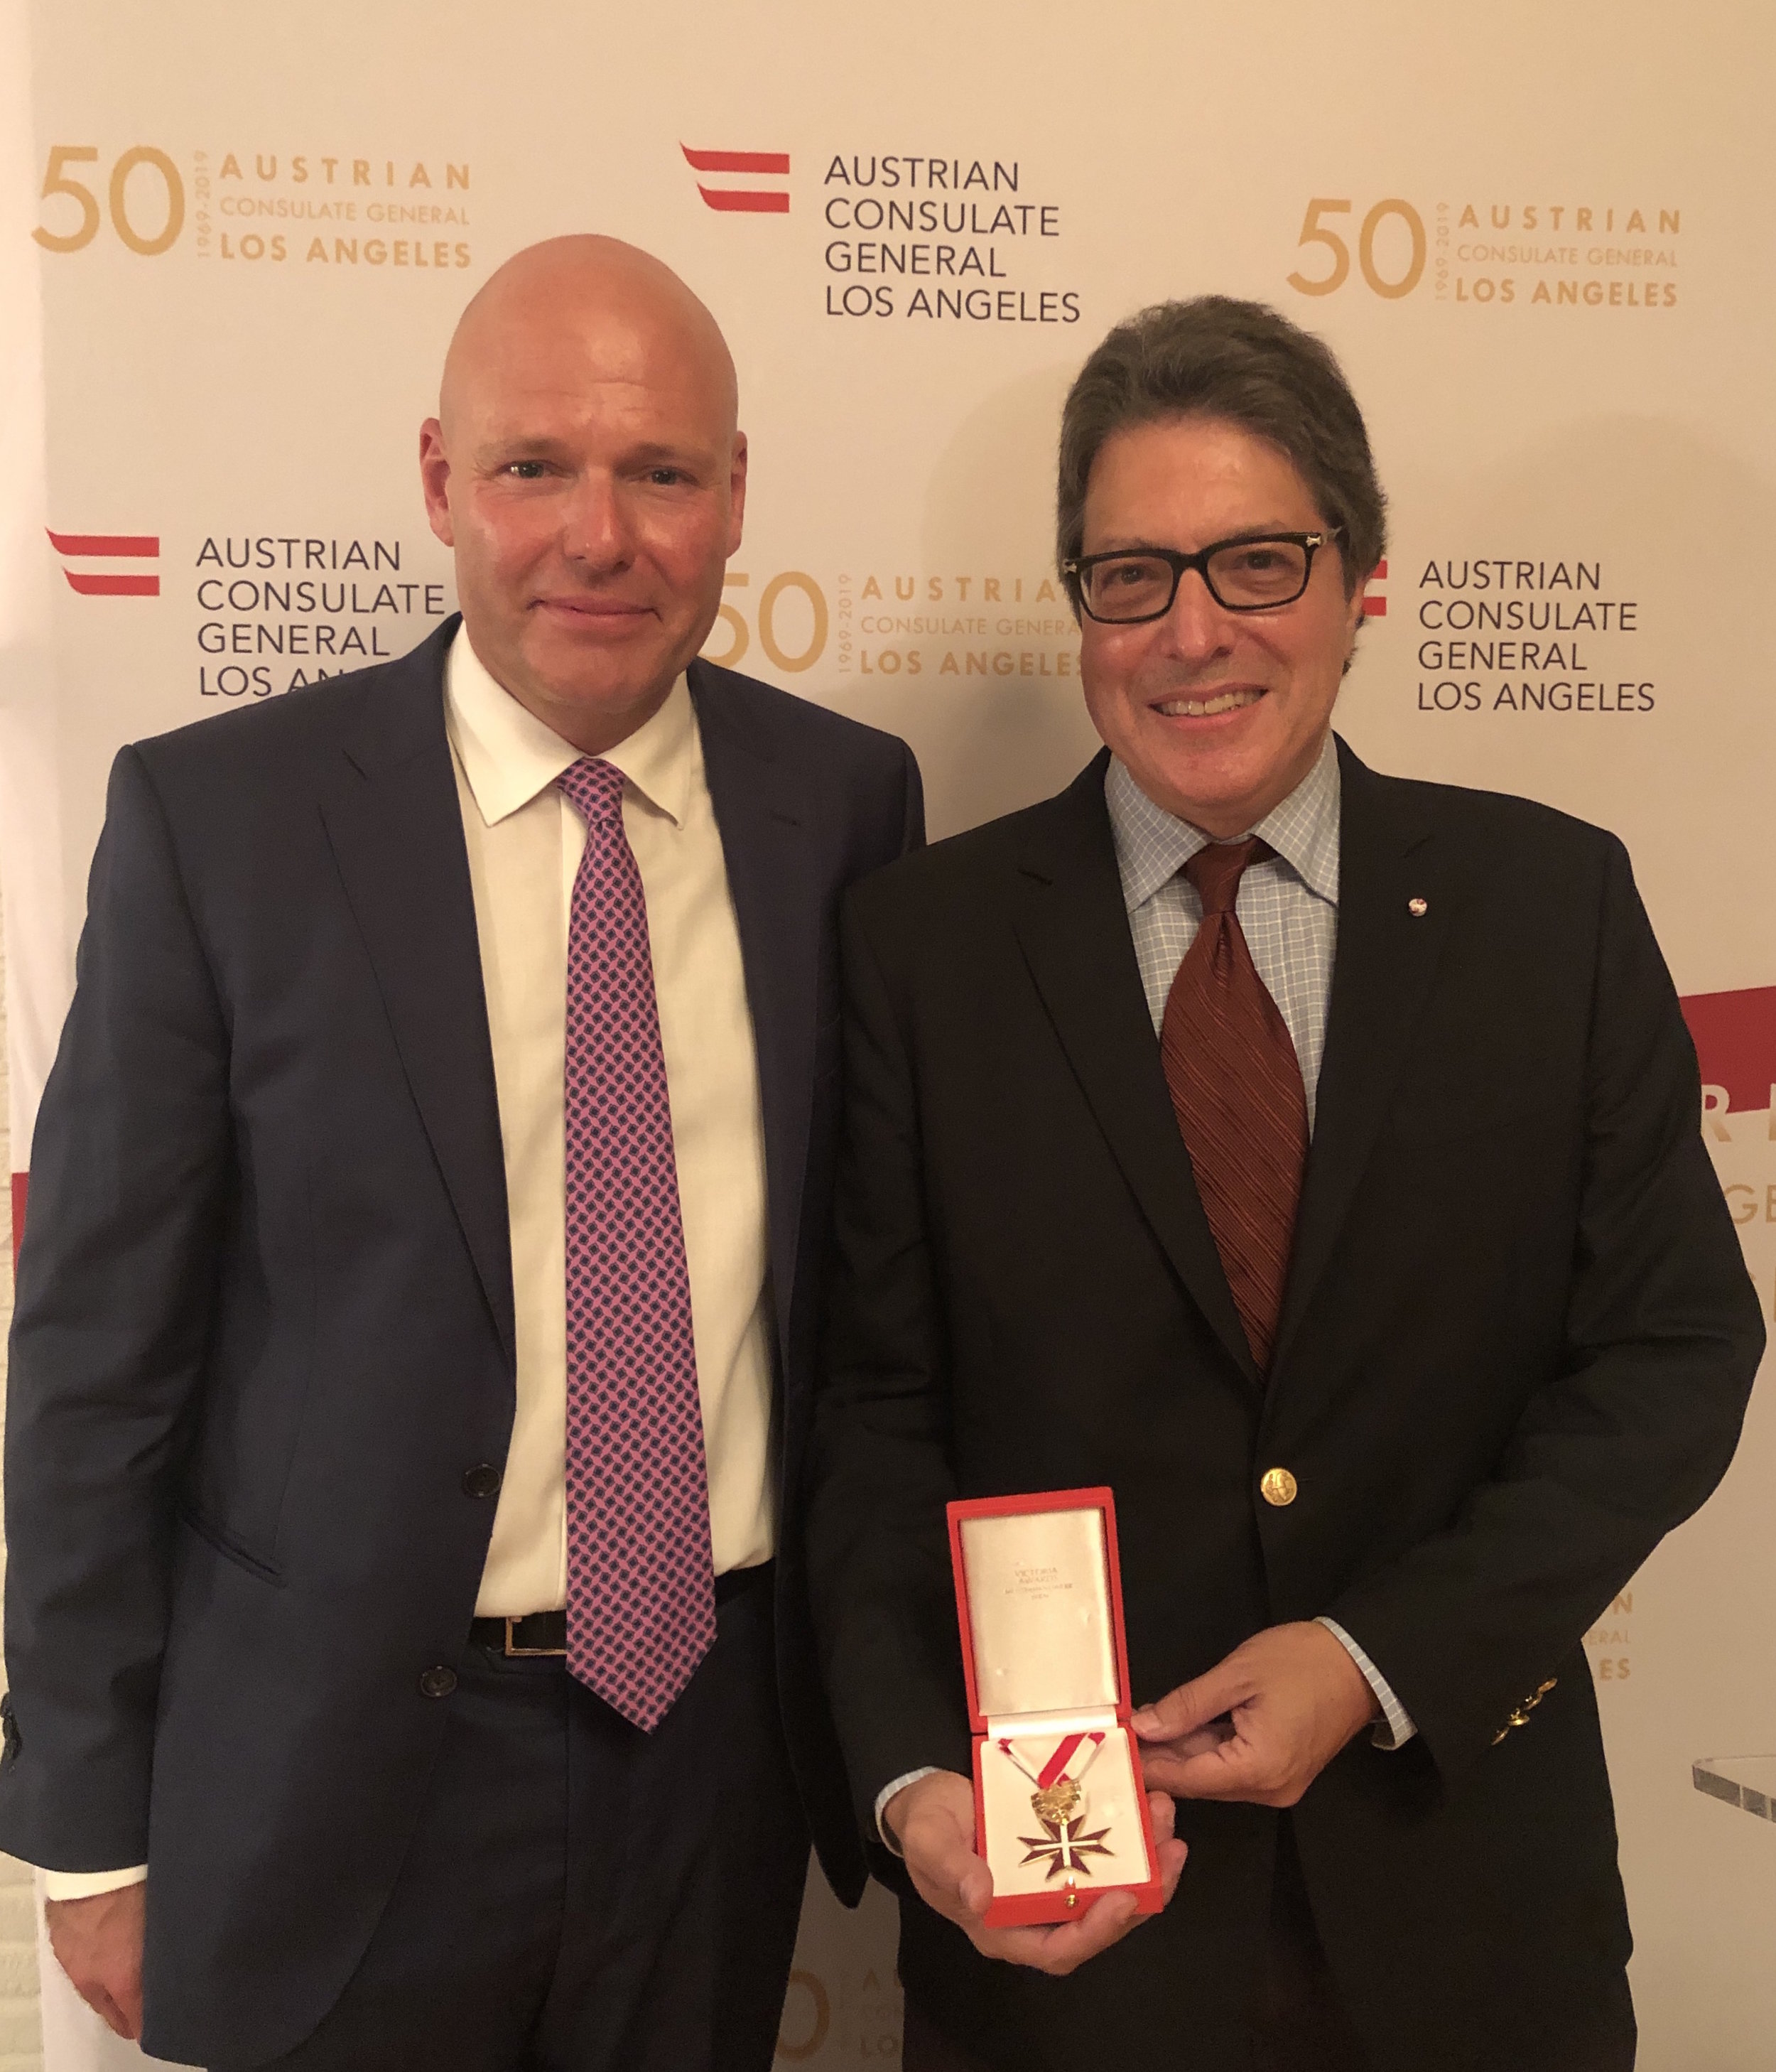 from left: Austrian Consul General Andreas Launer with Beverly Hills Mayor John Mirisch (c) Austrian Consulate General Los Angeles